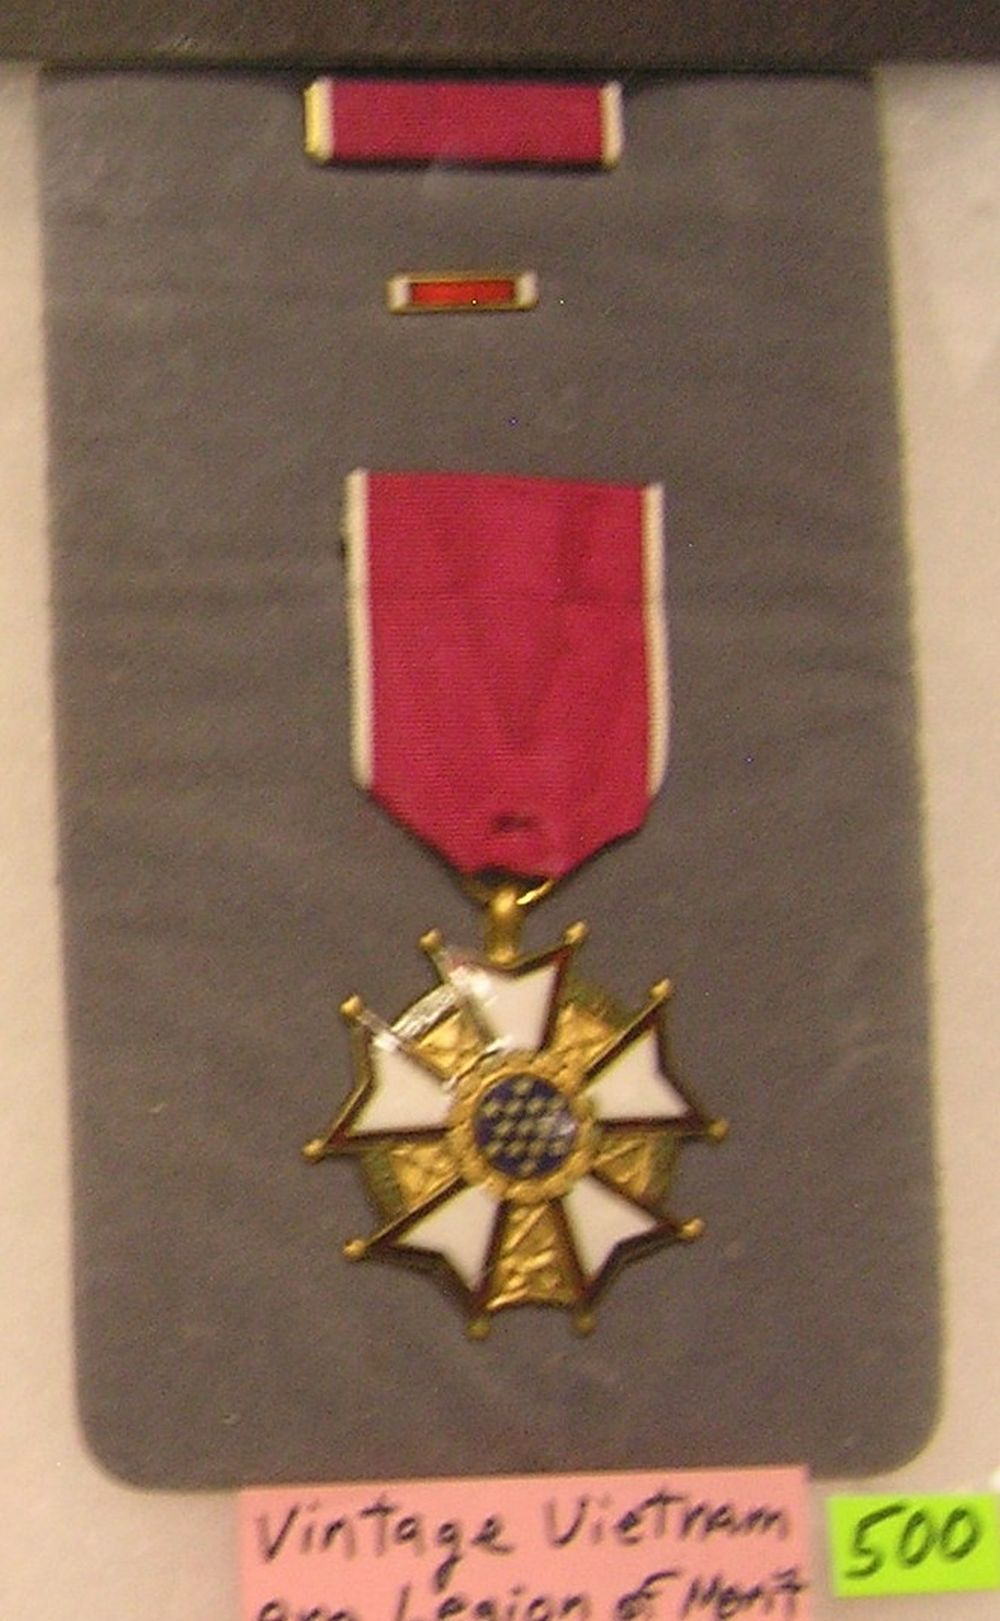 VINTAGE VIETNAM ERA LEGION OF MERIT MEDAL